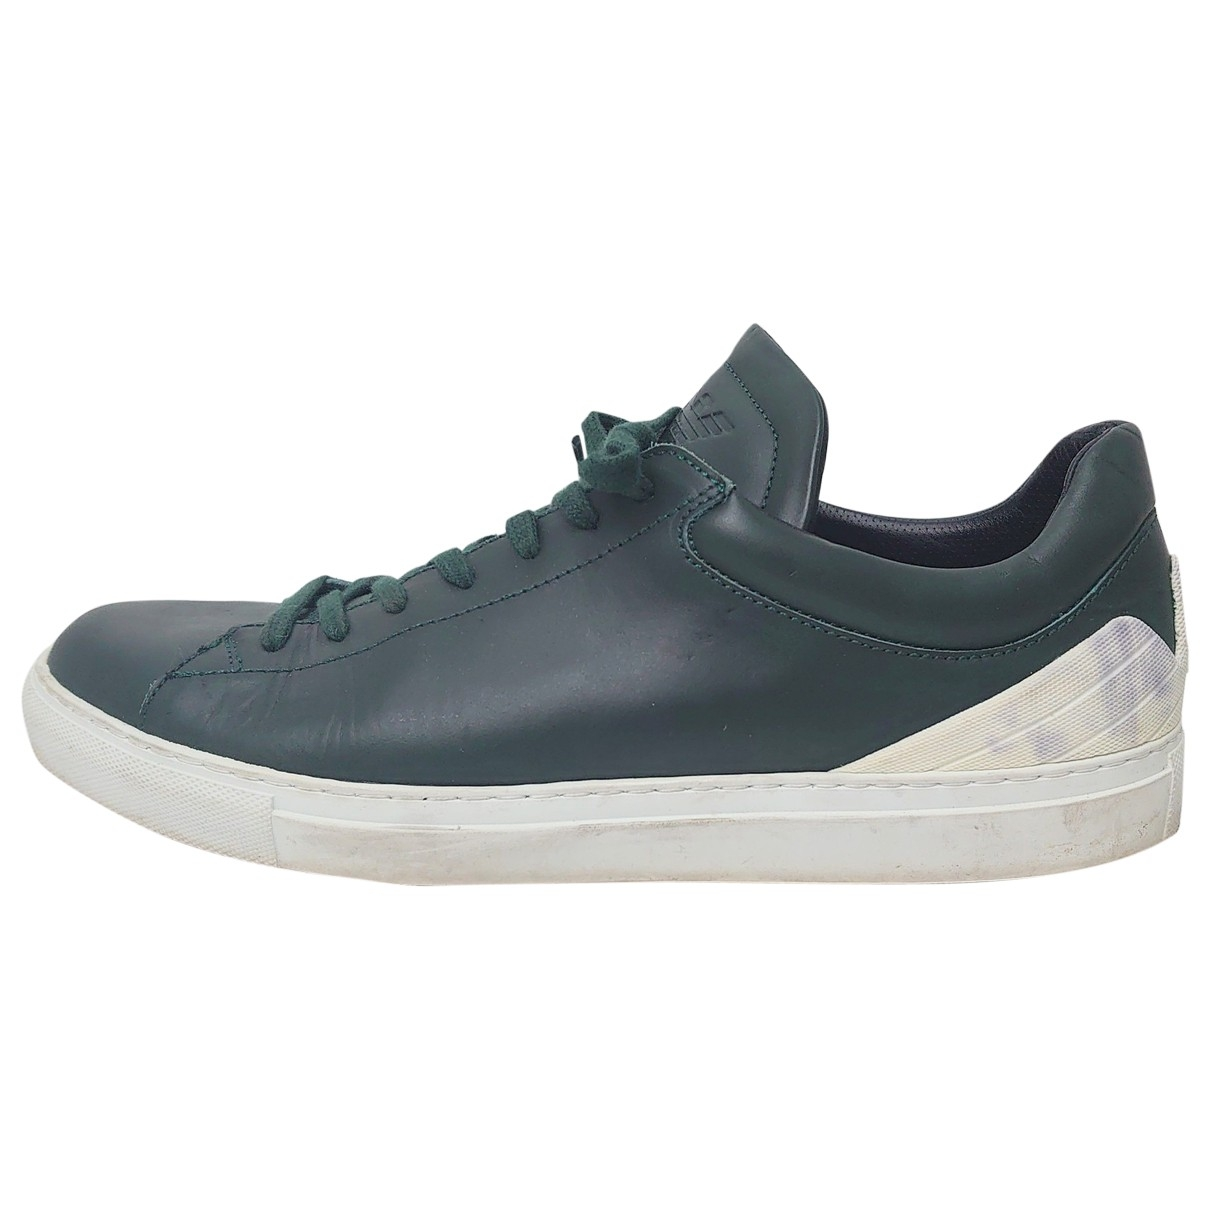 Emporio Armani \N Green Leather Trainers for Men 11.5 US